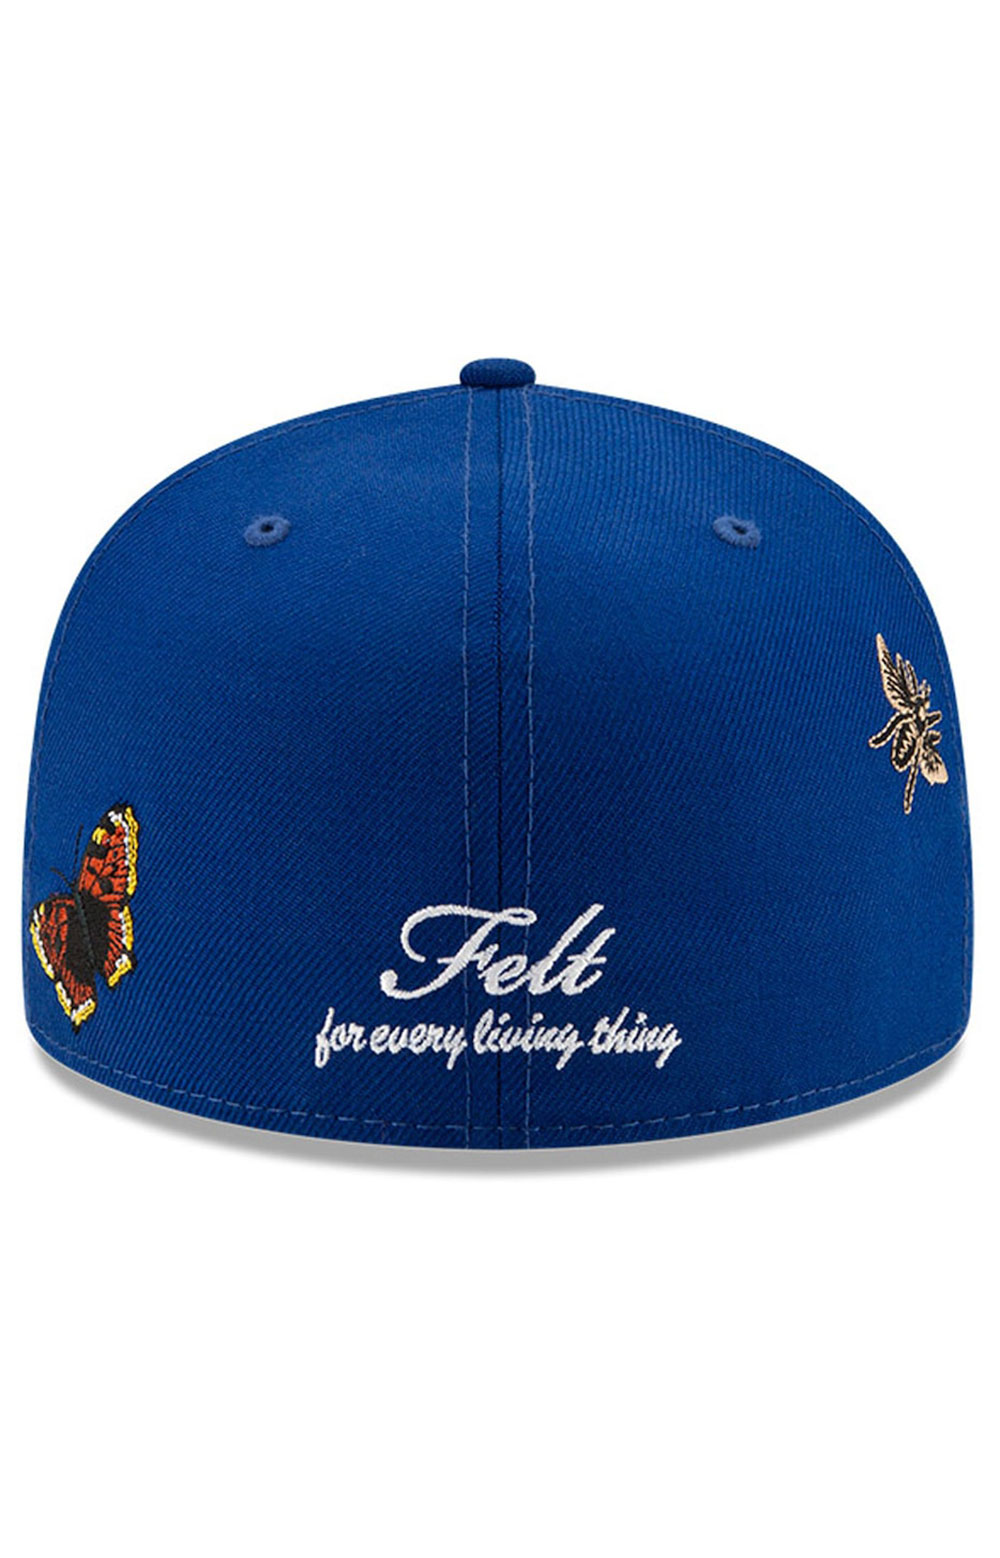 New York Mets 59Fifty Fitted Hat  4